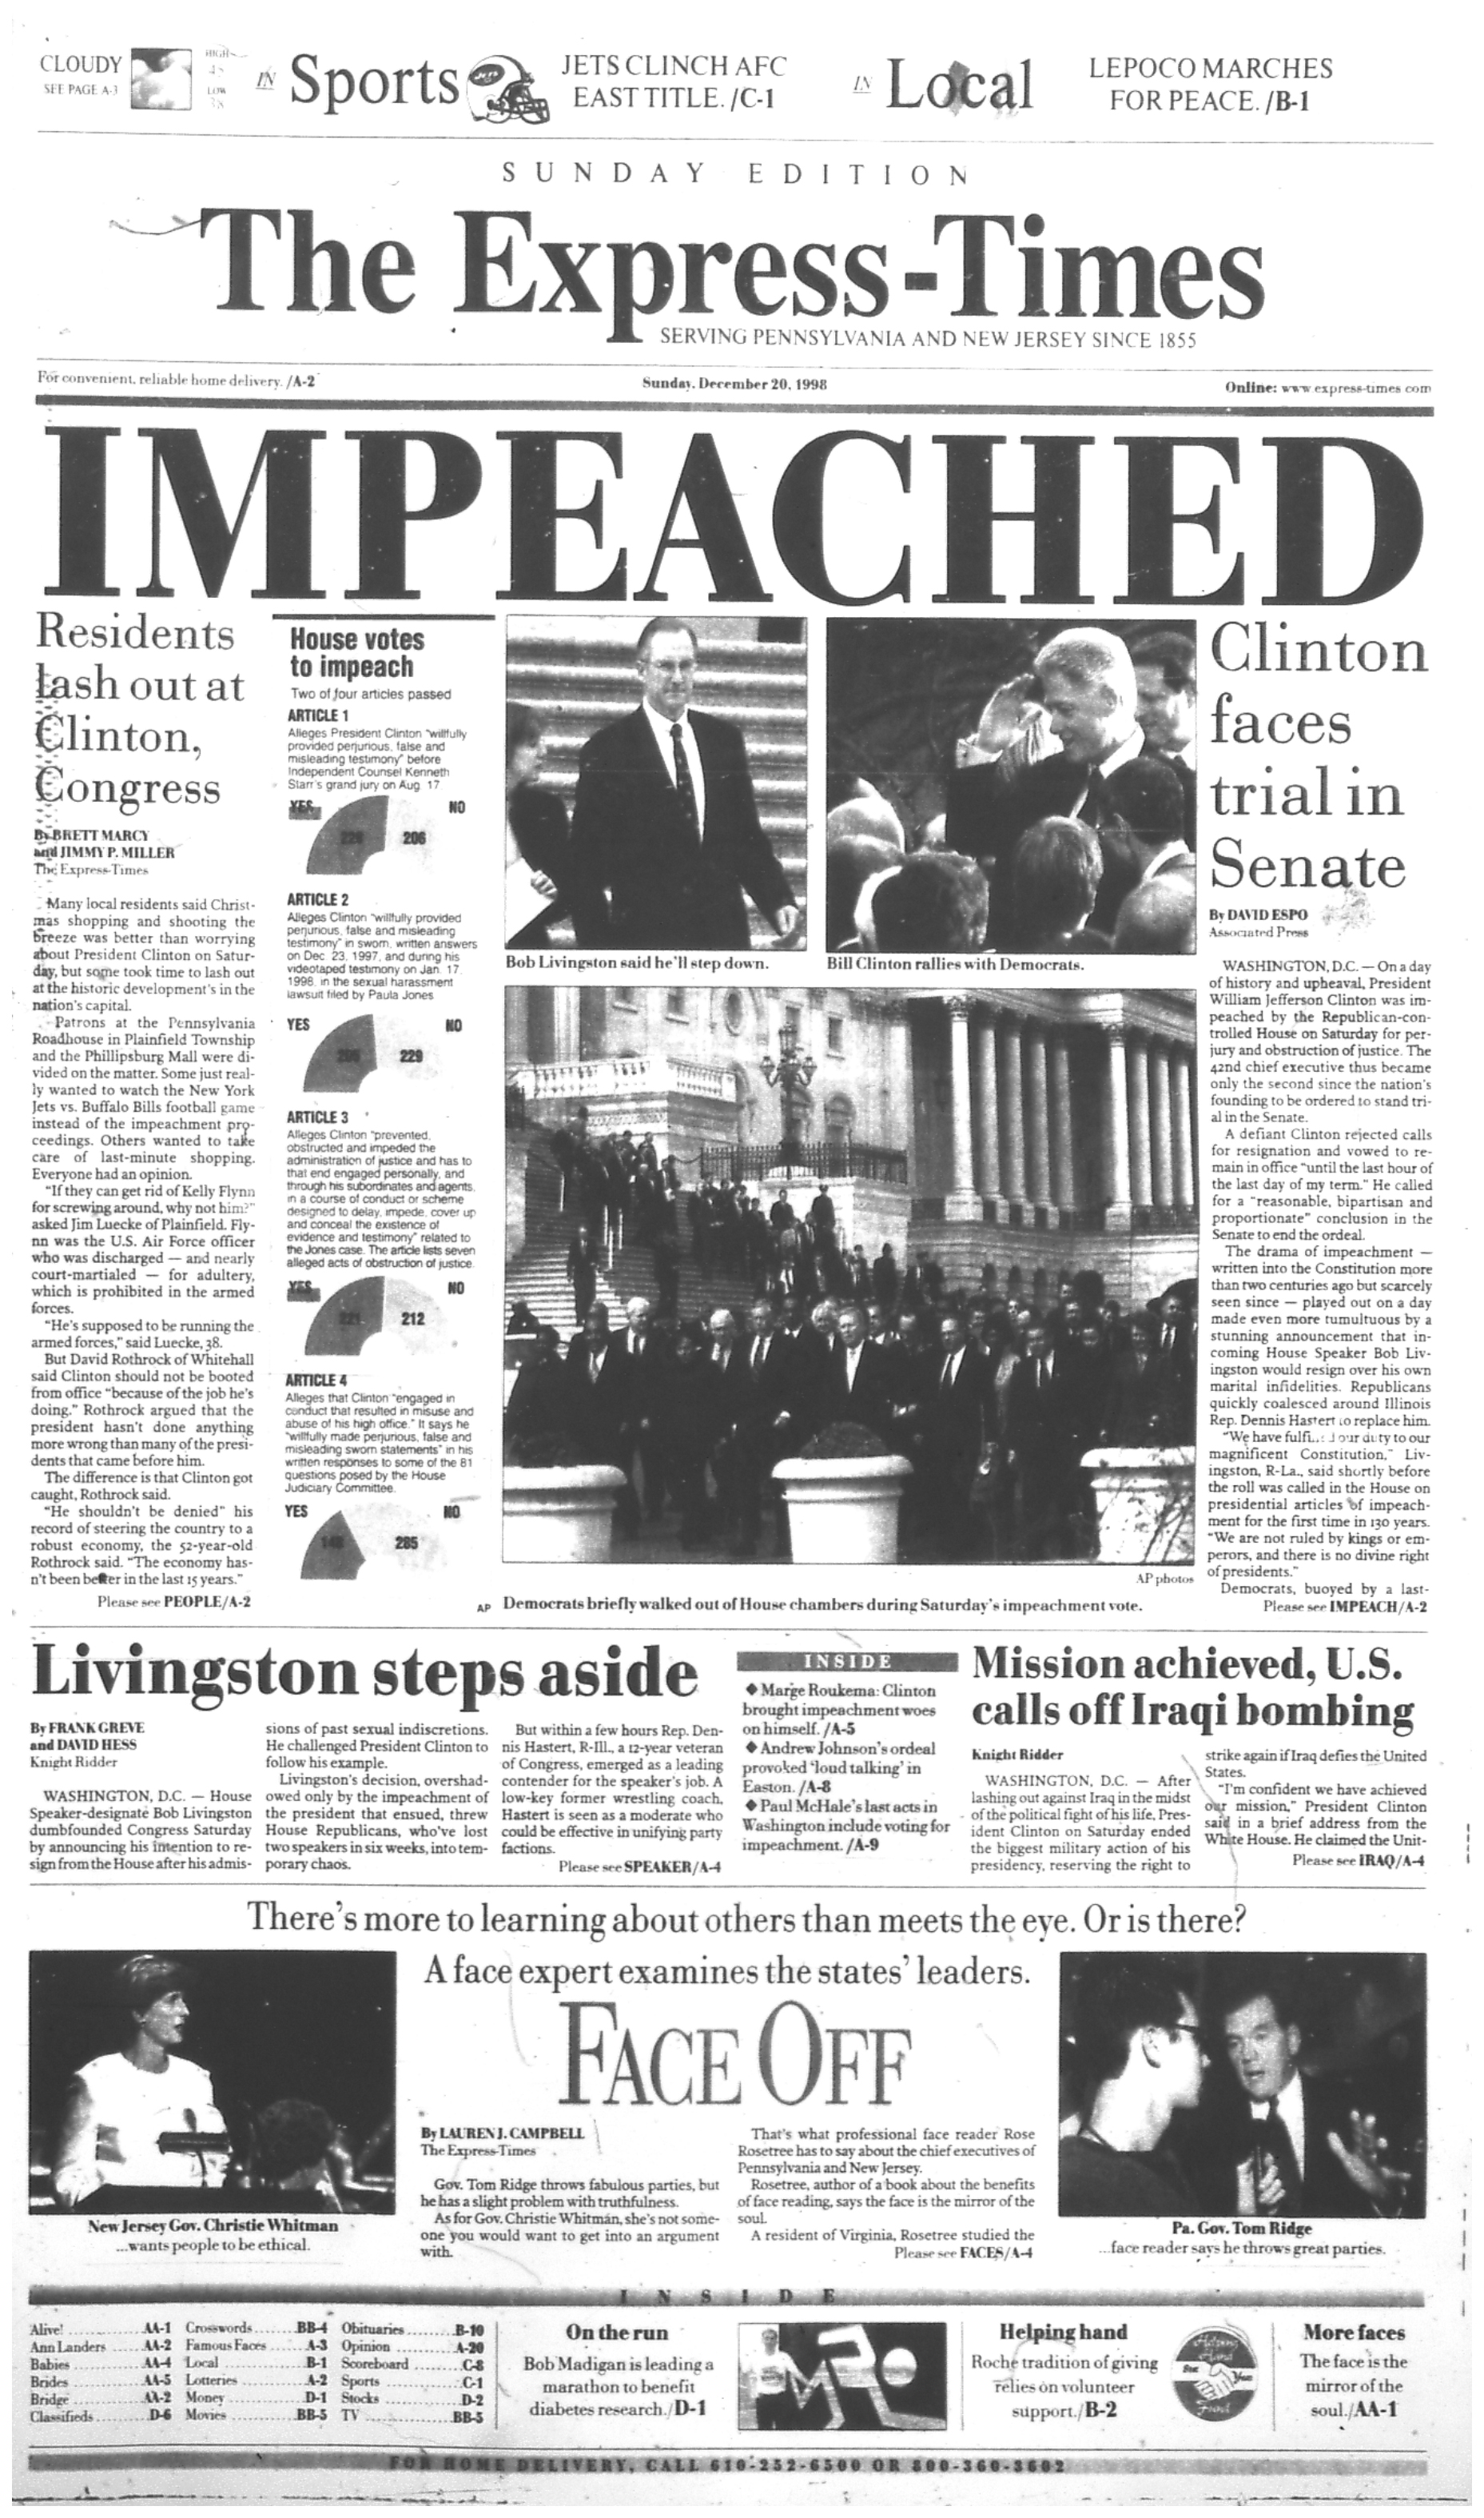 There Have Been 3 Impeachments In U S History See The Express Times Front Pages For Each One Lehighvalleylive Com